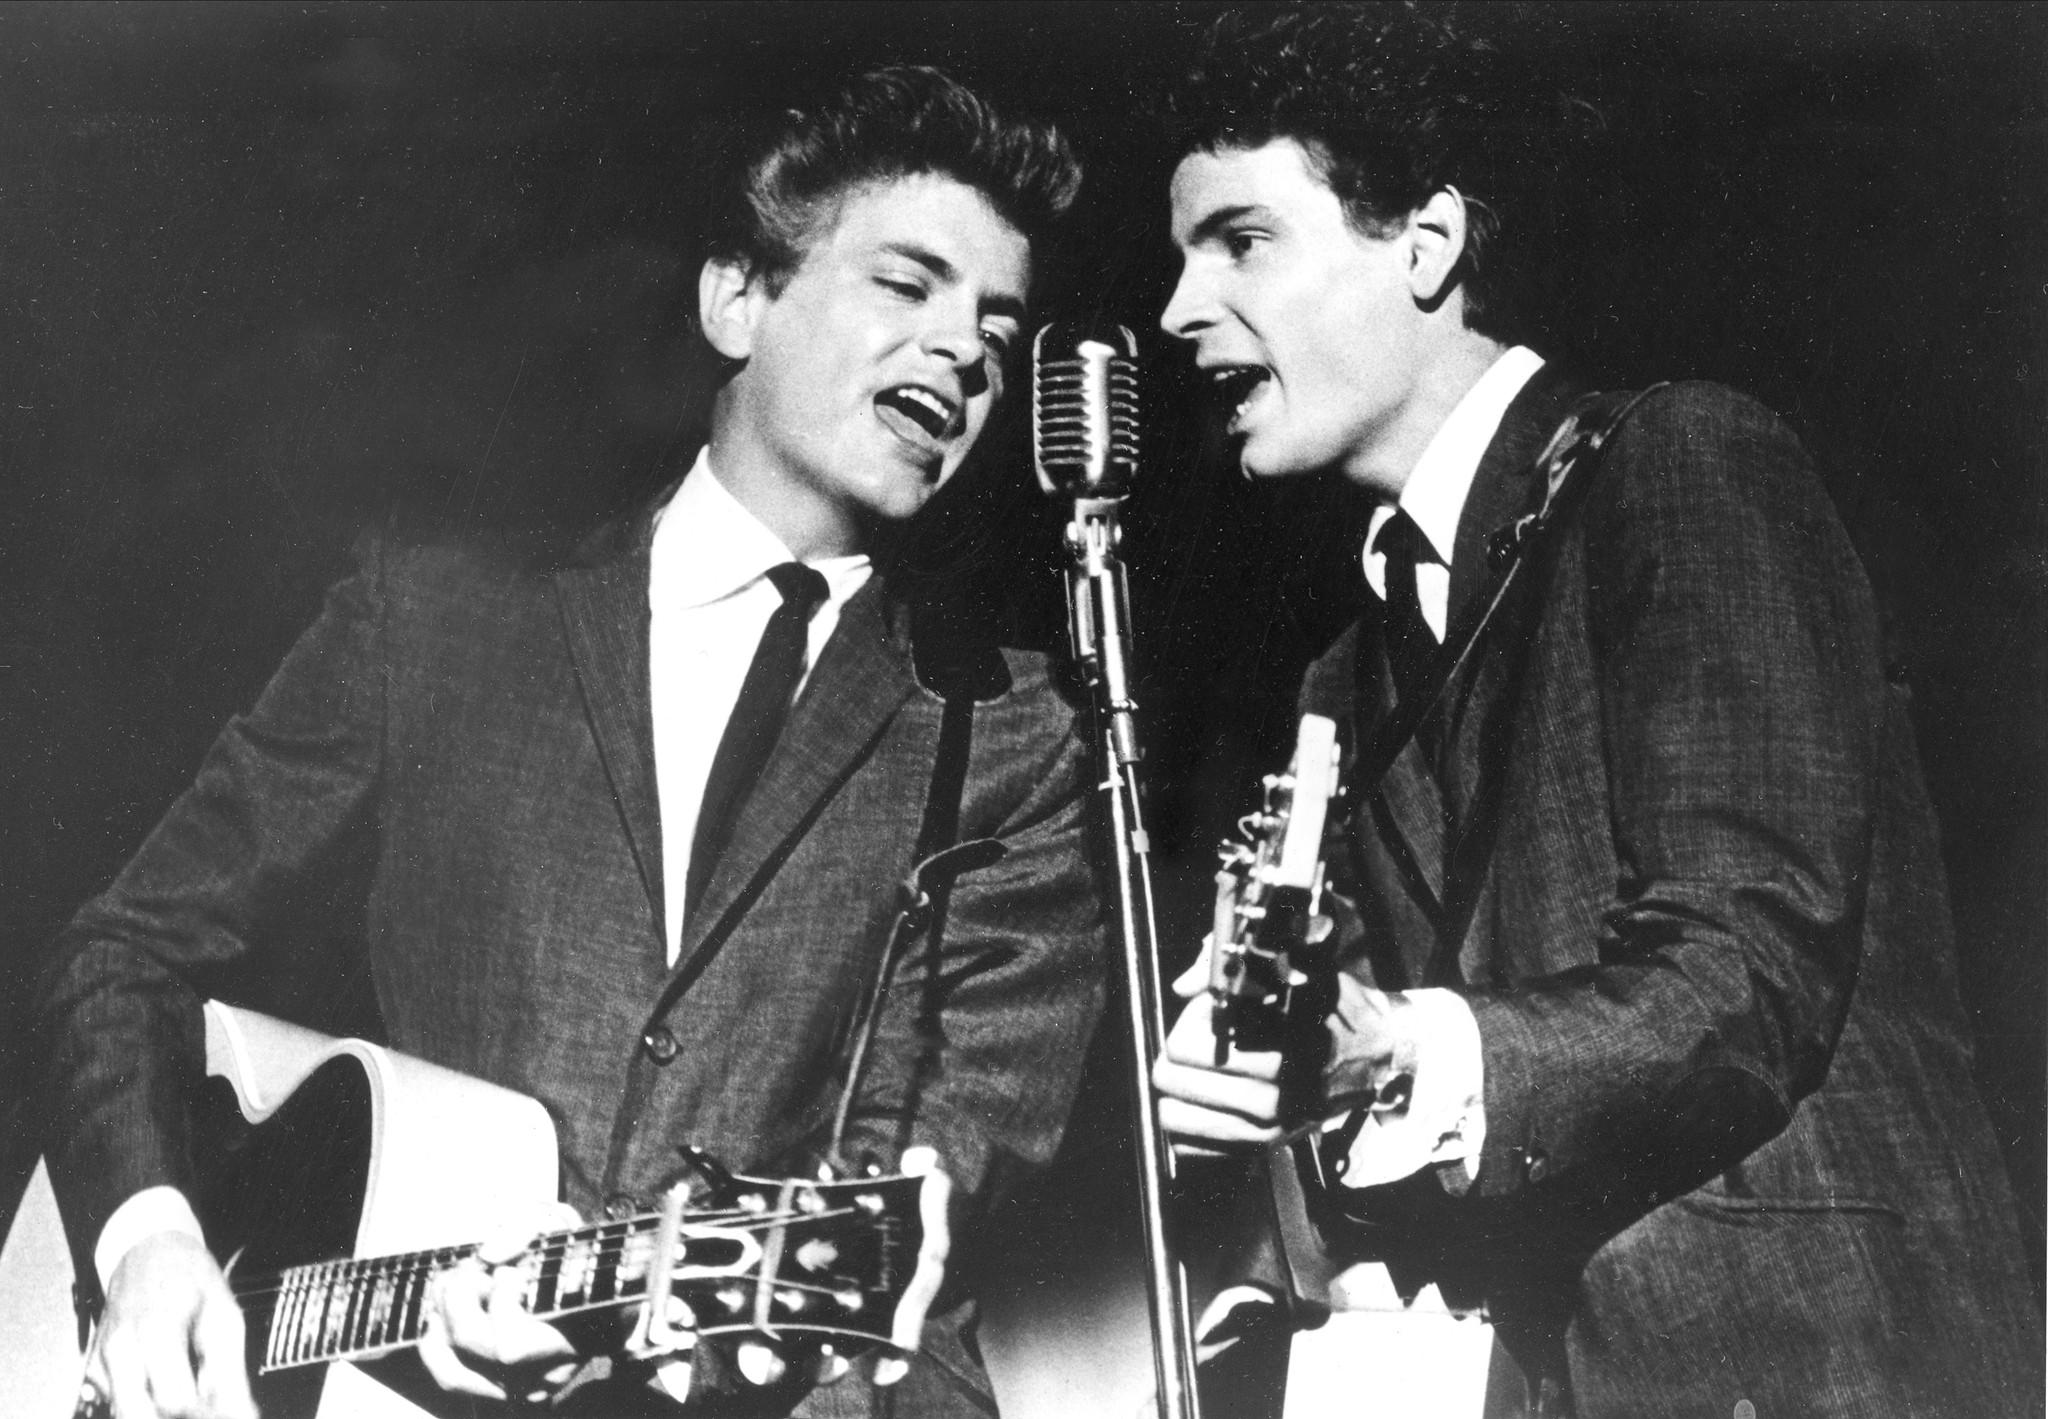 Phil Everly, left, and his brother Don, shown in 1964, will be saluted by Bonnie Raitt, Rodney Crowell, Ry Cooder and others on Saturday at the Troubadour in West Hollywood.